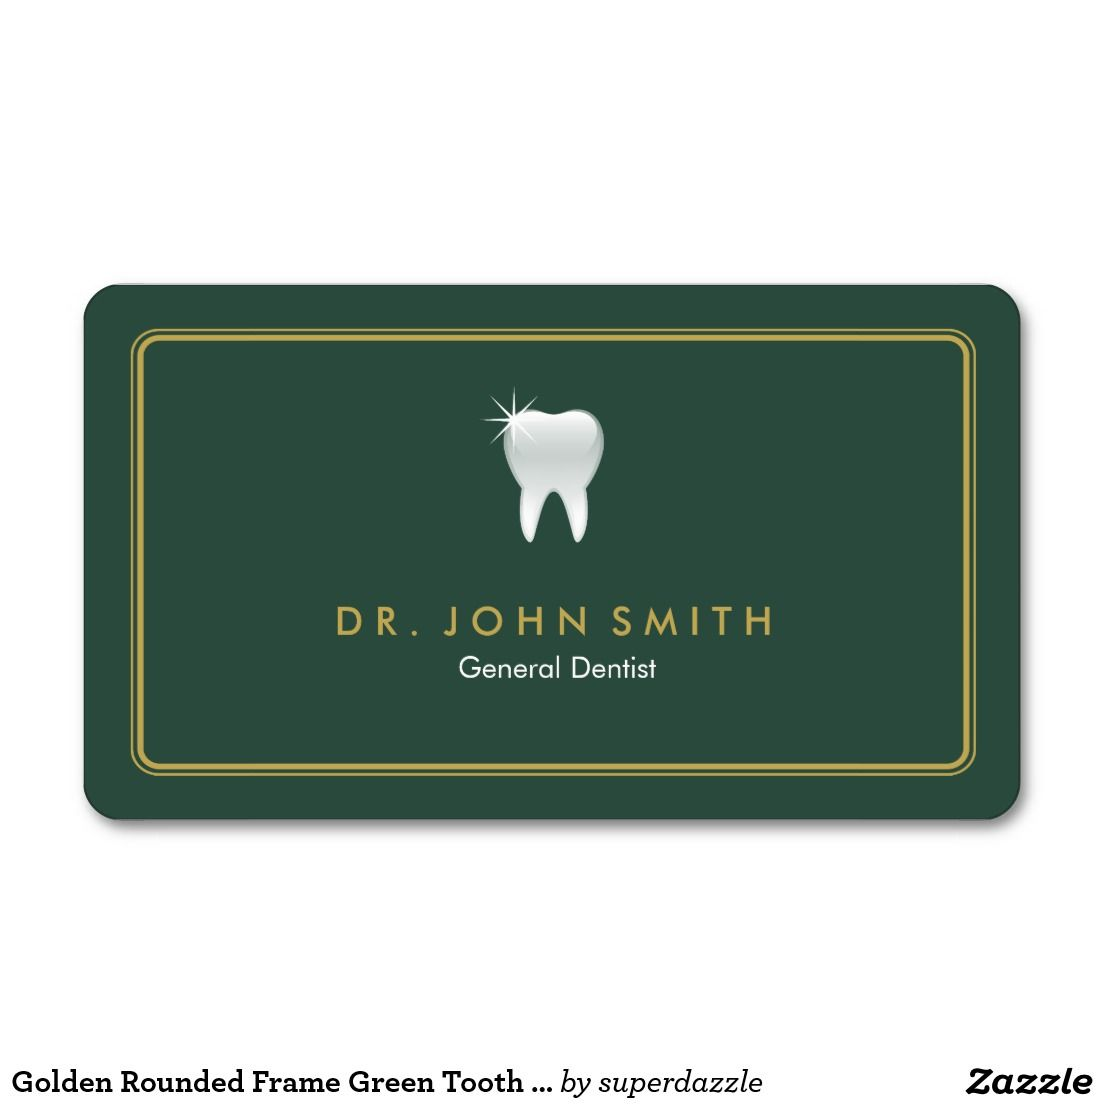 Golden rounded frame green tooth dental appointment card pinterest golden rounded frame green tooth dental appointment business card template with an image of a shiny tooth an appointment card on the back of this dentistry fbccfo Gallery